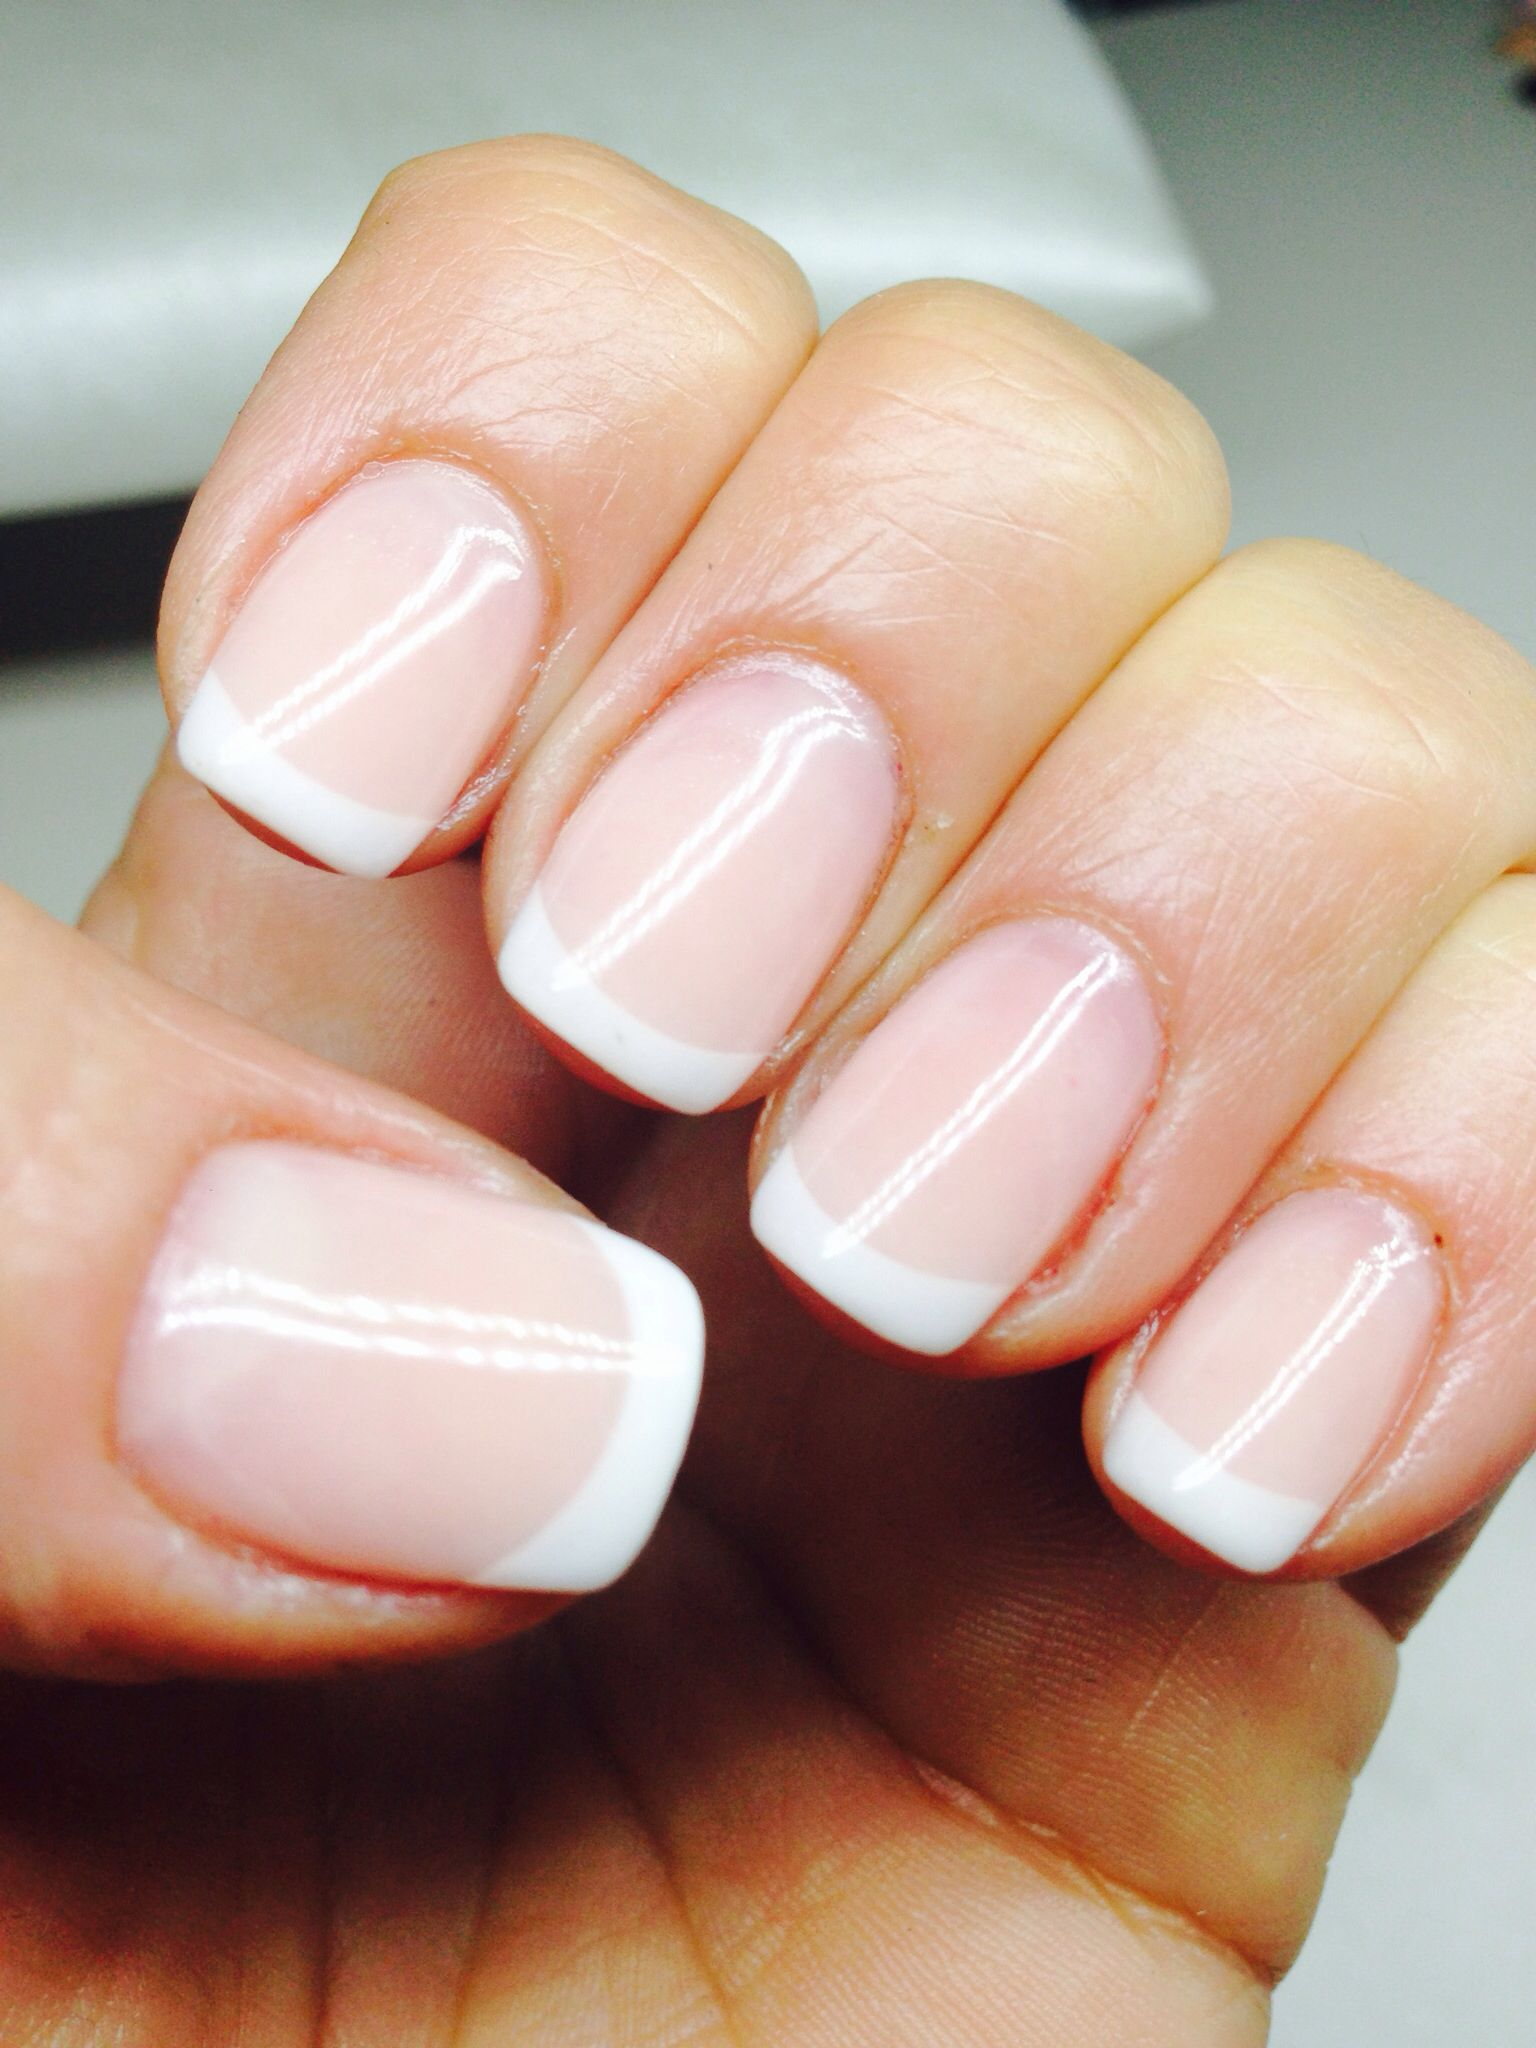 French Natural nails | Nail Design | Pinterest | Natural nails ...